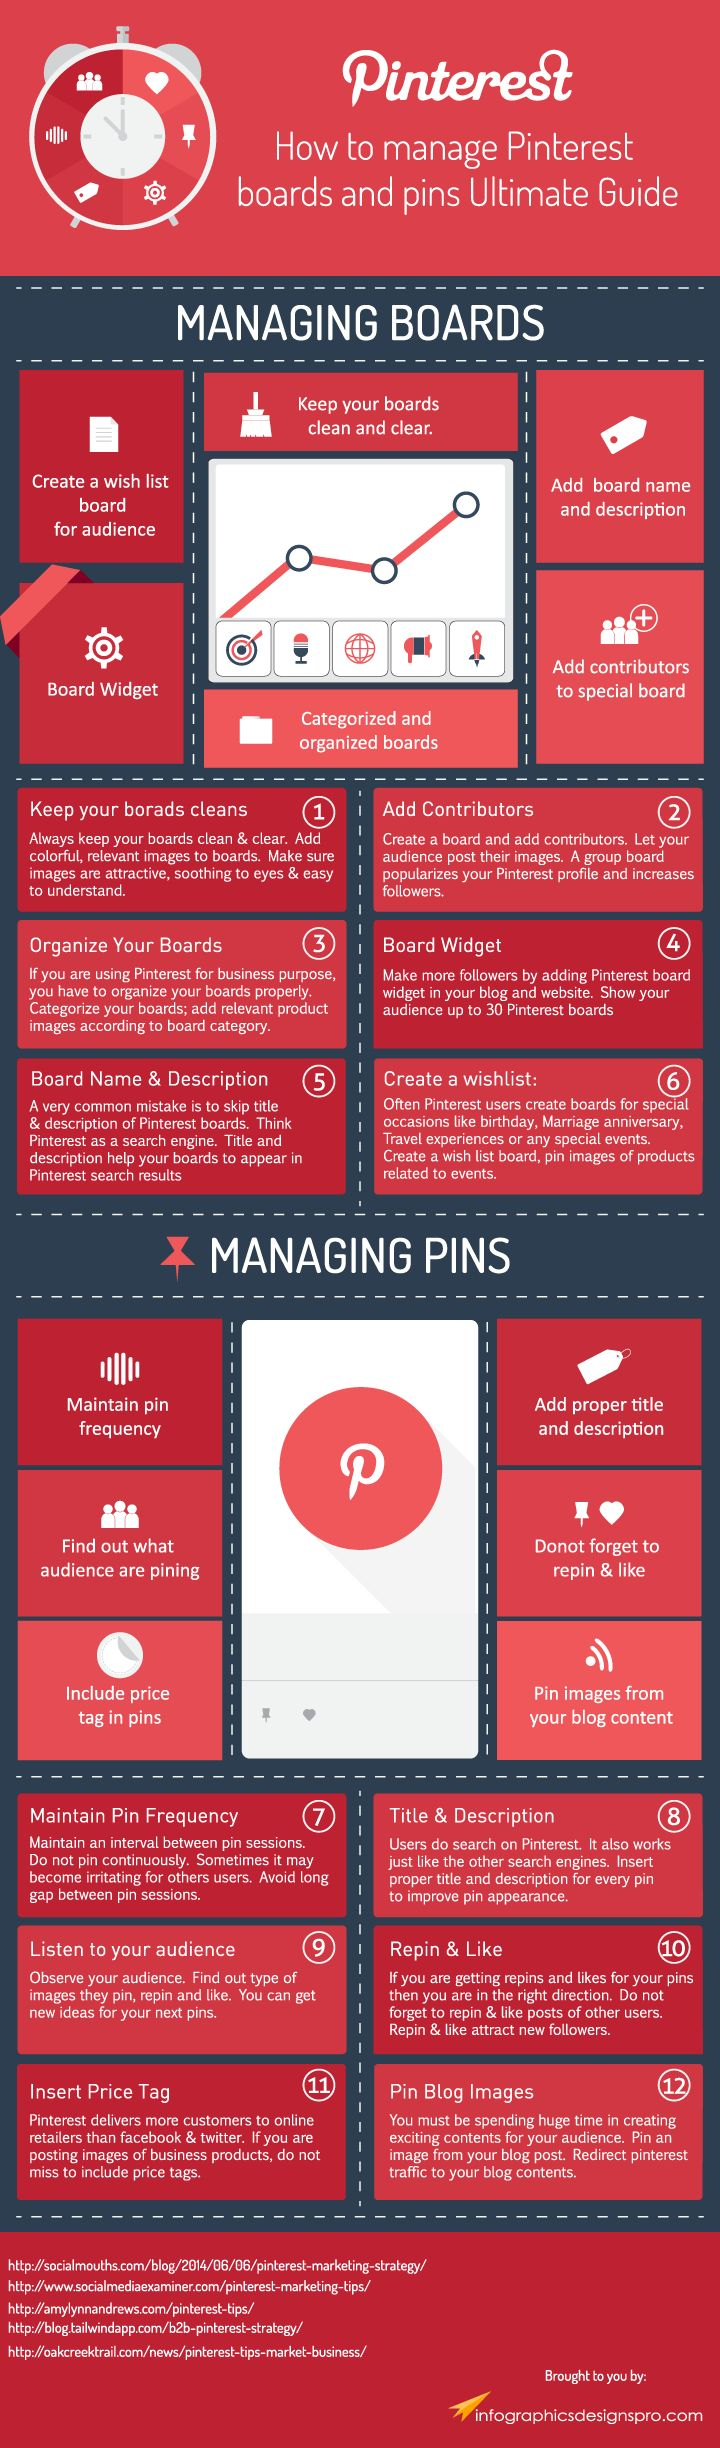 The Art Of Managing Pinterest Pins And Boards: Are you wondering how to keep your Pinterest boards and pins properly organized? Take a look at above infographic from InfographicsDesignsPro to learn the art of managing Pinterest pins and boards for business.